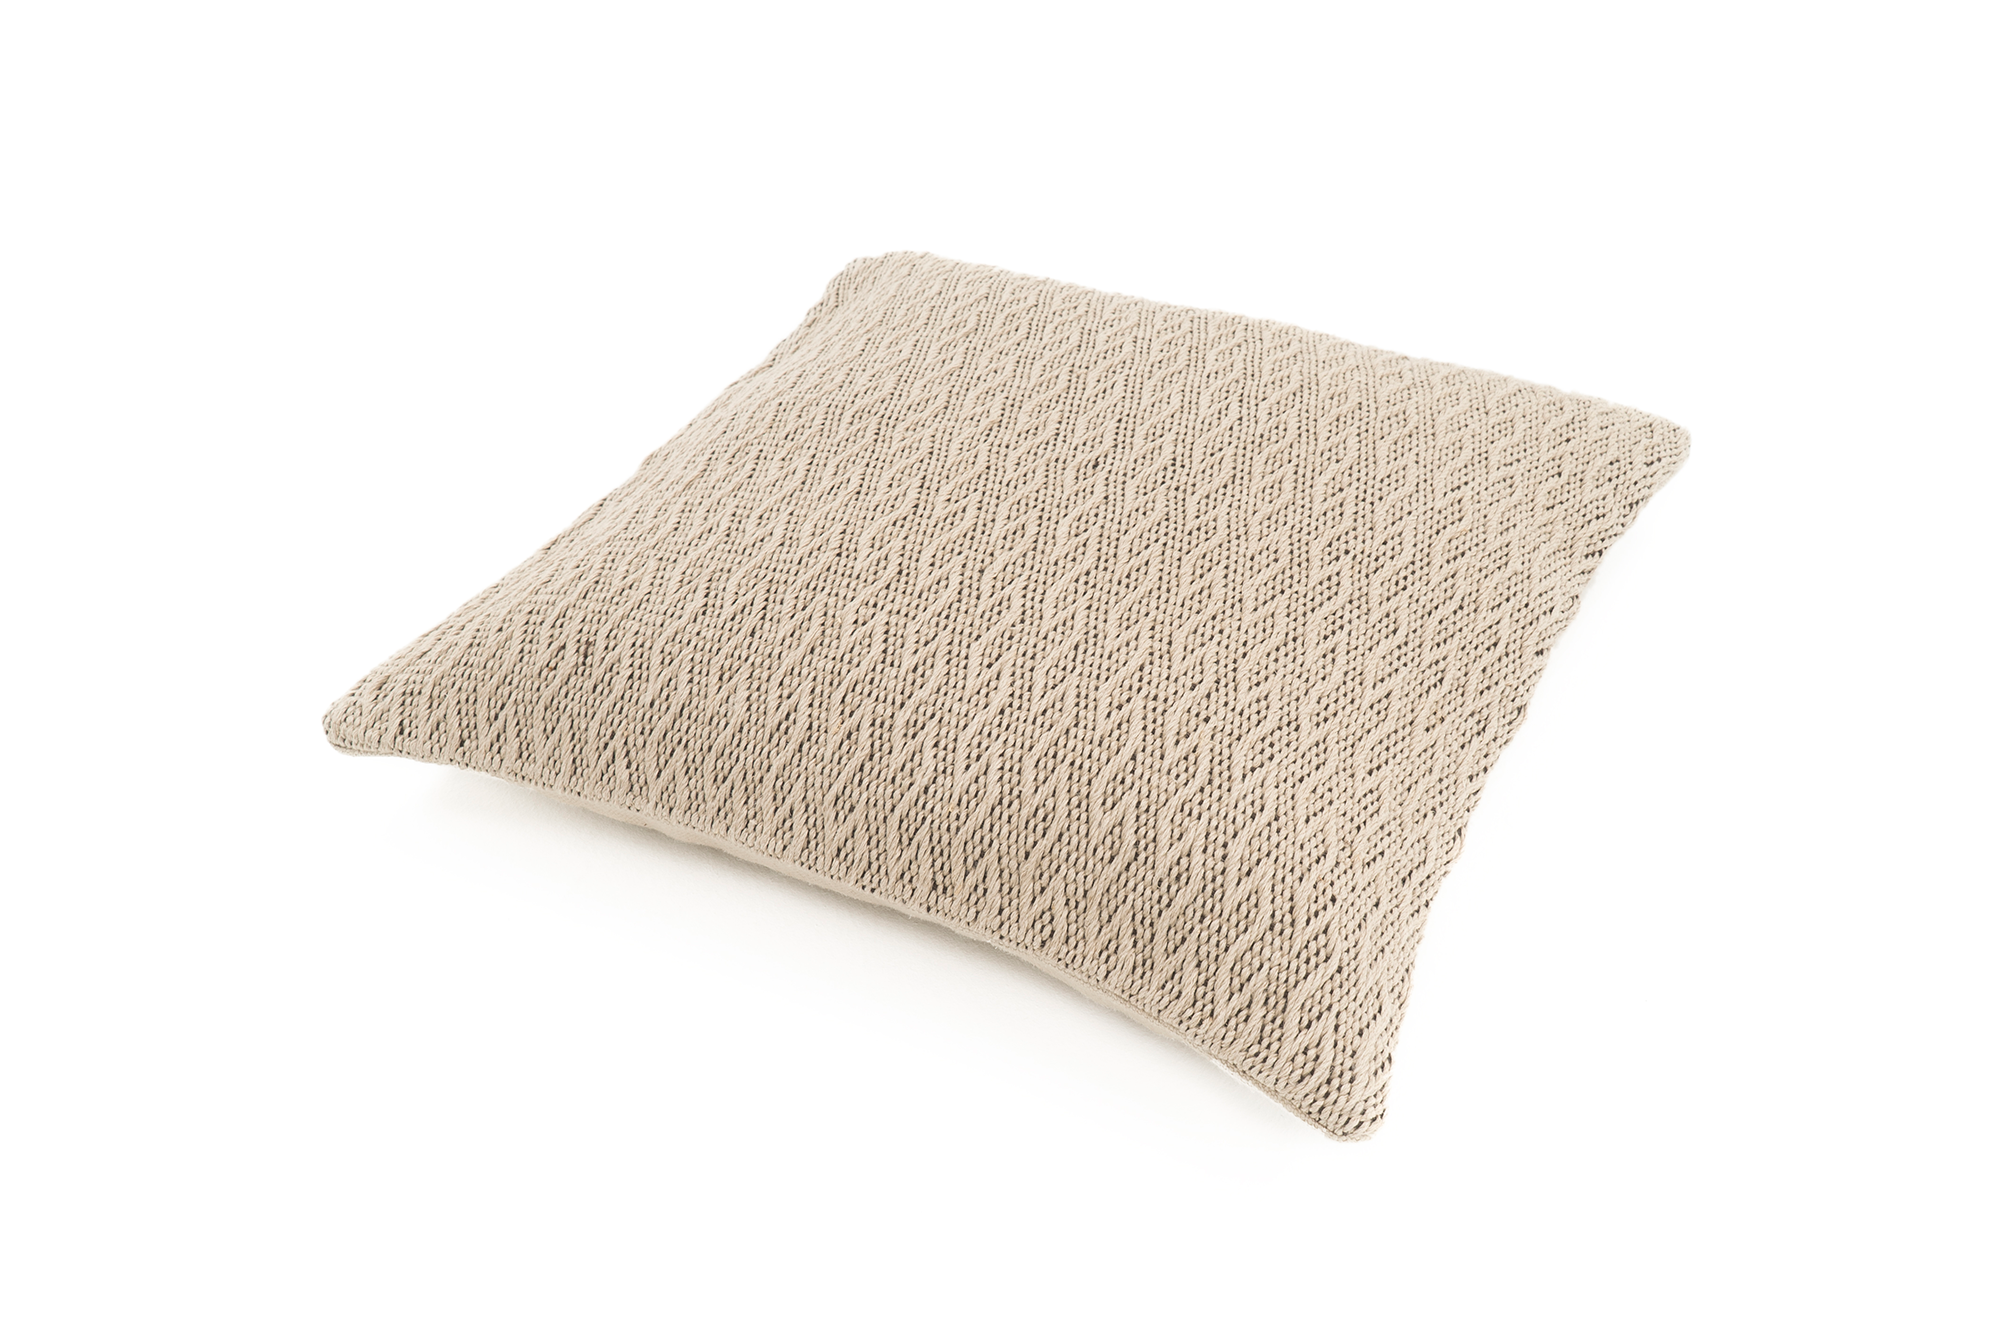 """Reliance"" Handwoven Hemp Pillow Case"